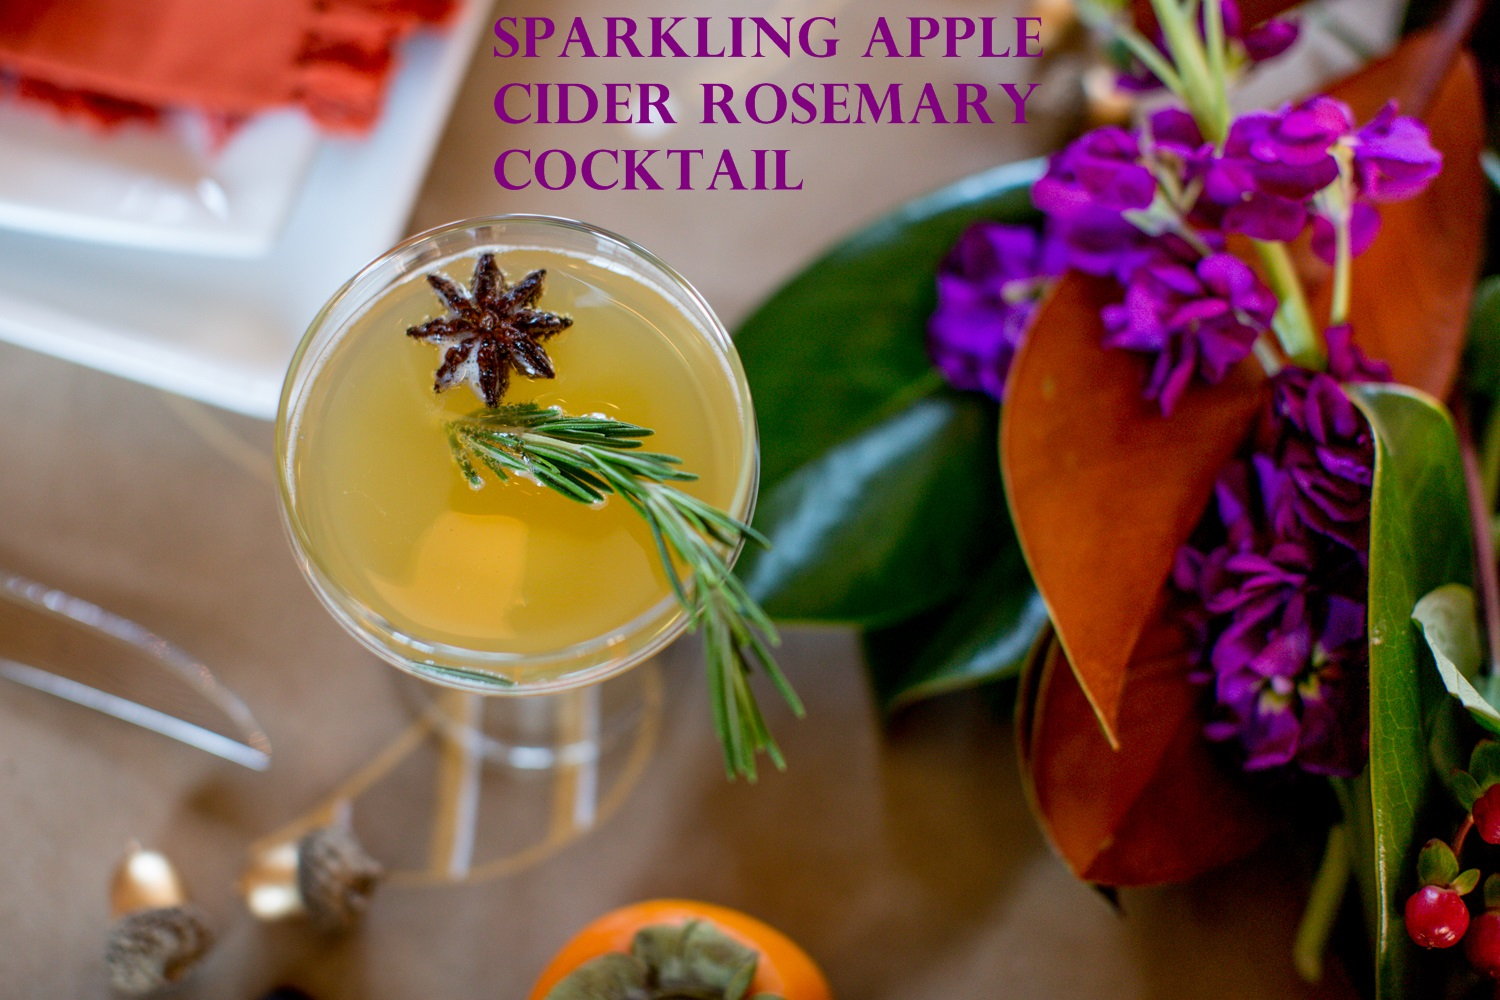 ... Apple Cider Rosemary Cocktail, which is a great alternative to the